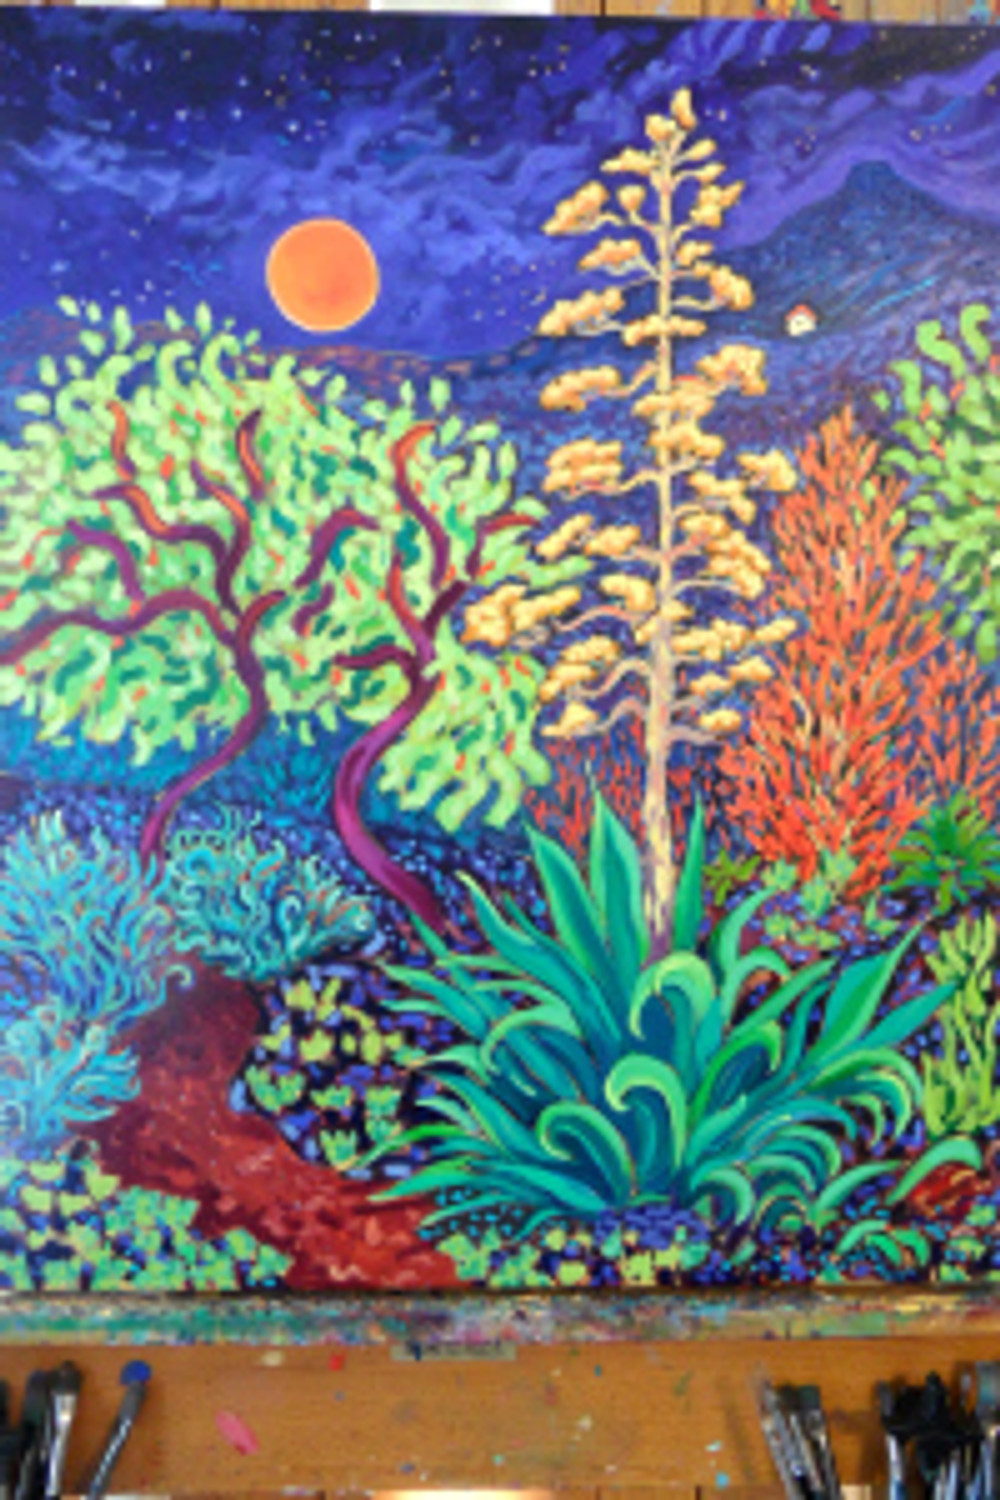 Moonlight Agave by Cathy Carey